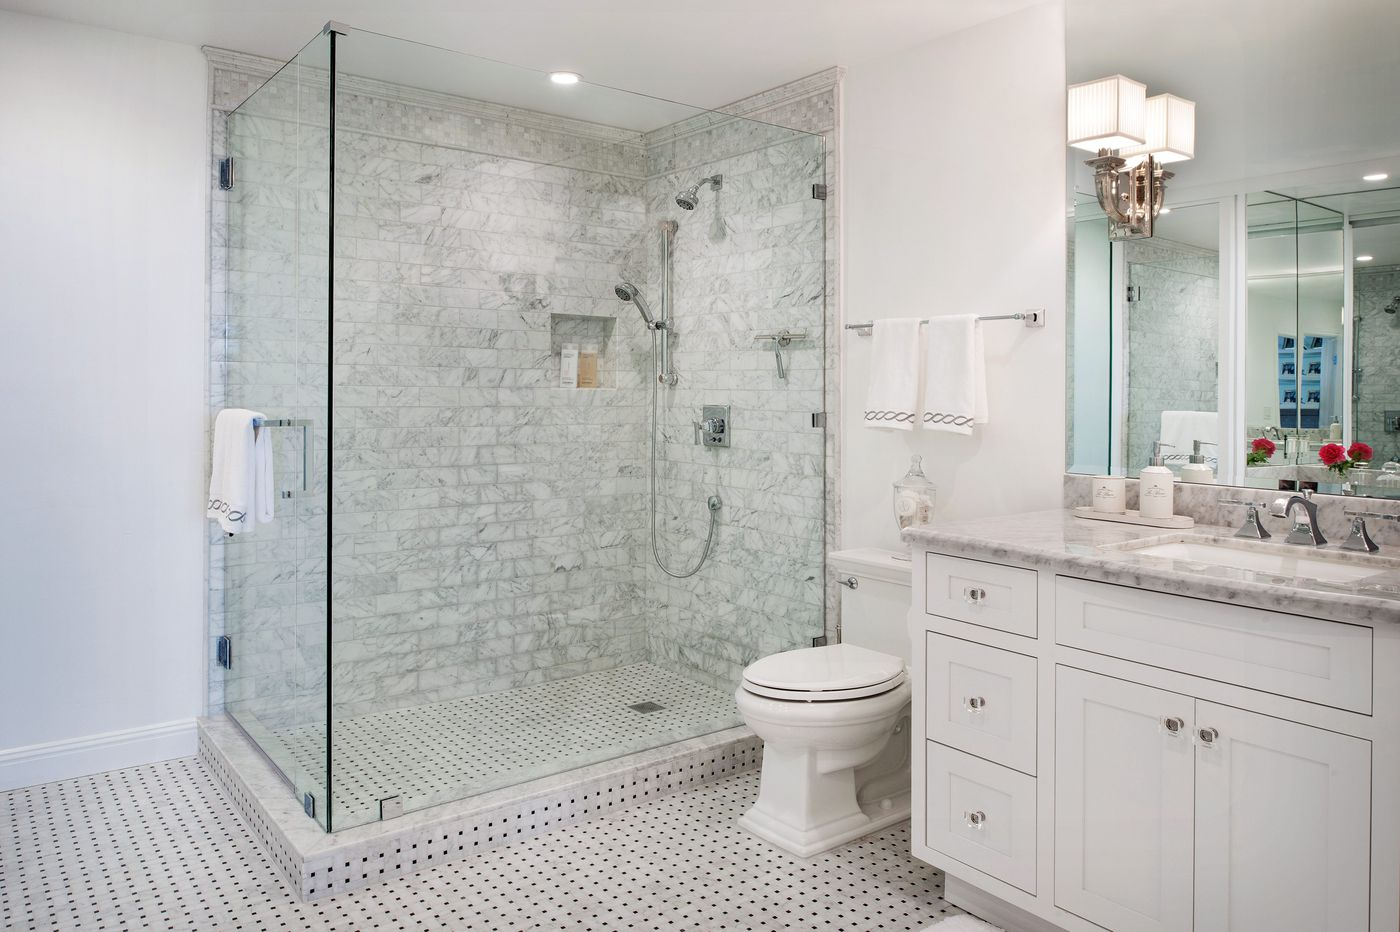 Ask Jennifer Adams: How to keep your glass shower doors clean in a guest bathroom